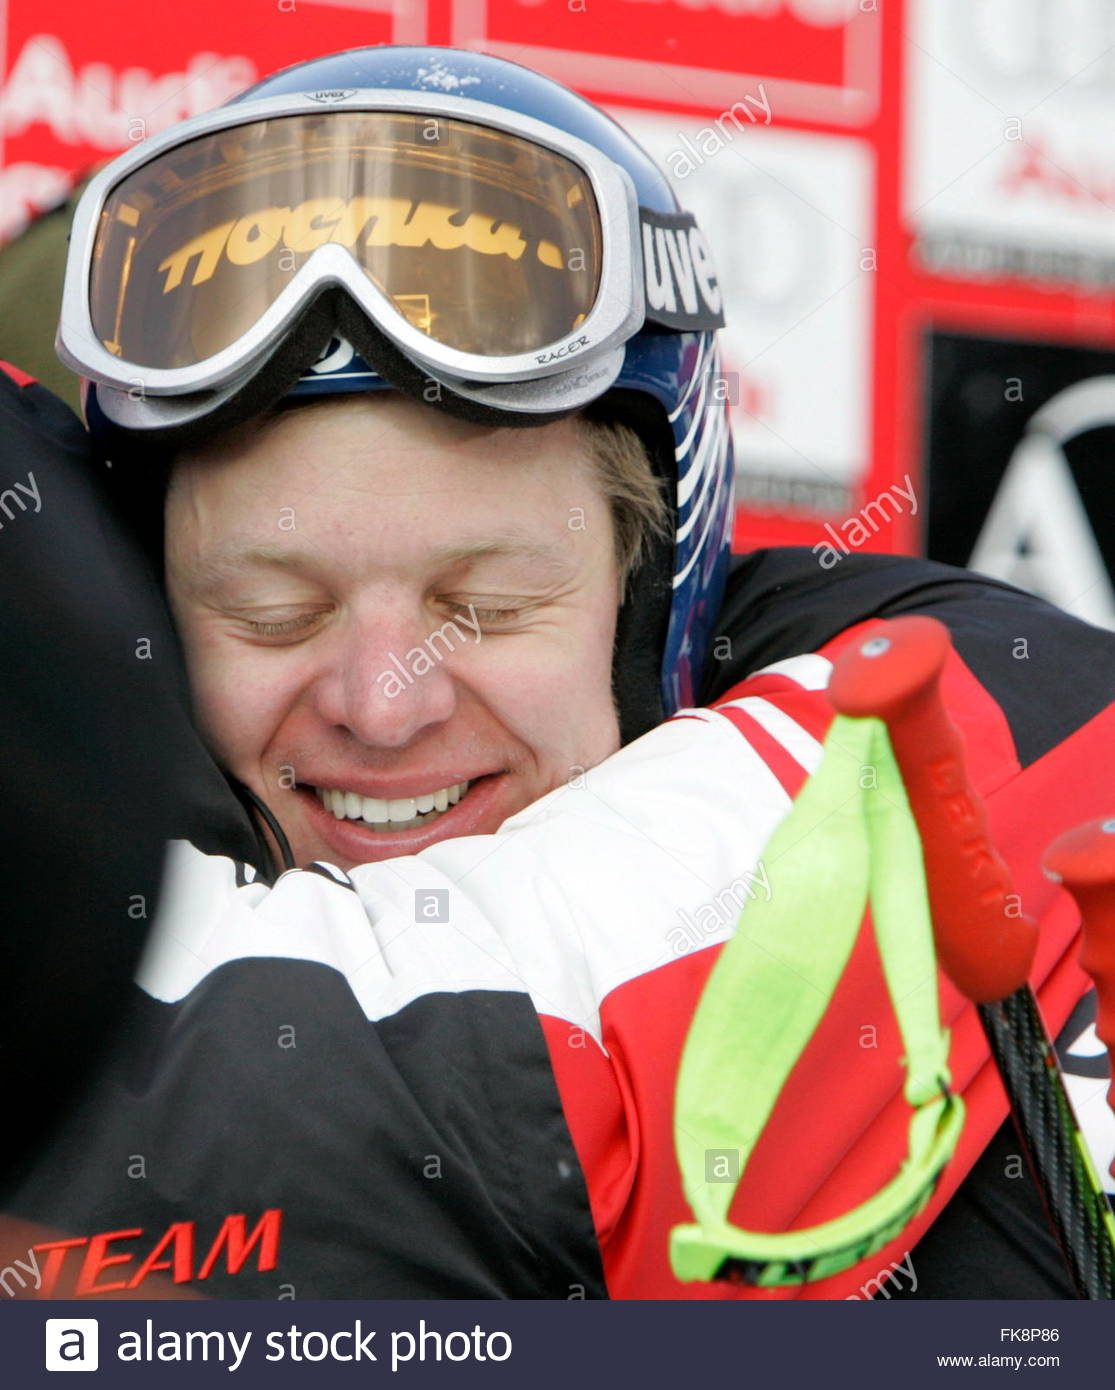 Andreas Buder of Austria gets a hug after his <b>third place</b> finish at the ... - andreas-buder-of-austria-gets-a-hug-after-his-third-place-finish-at-FK8P86